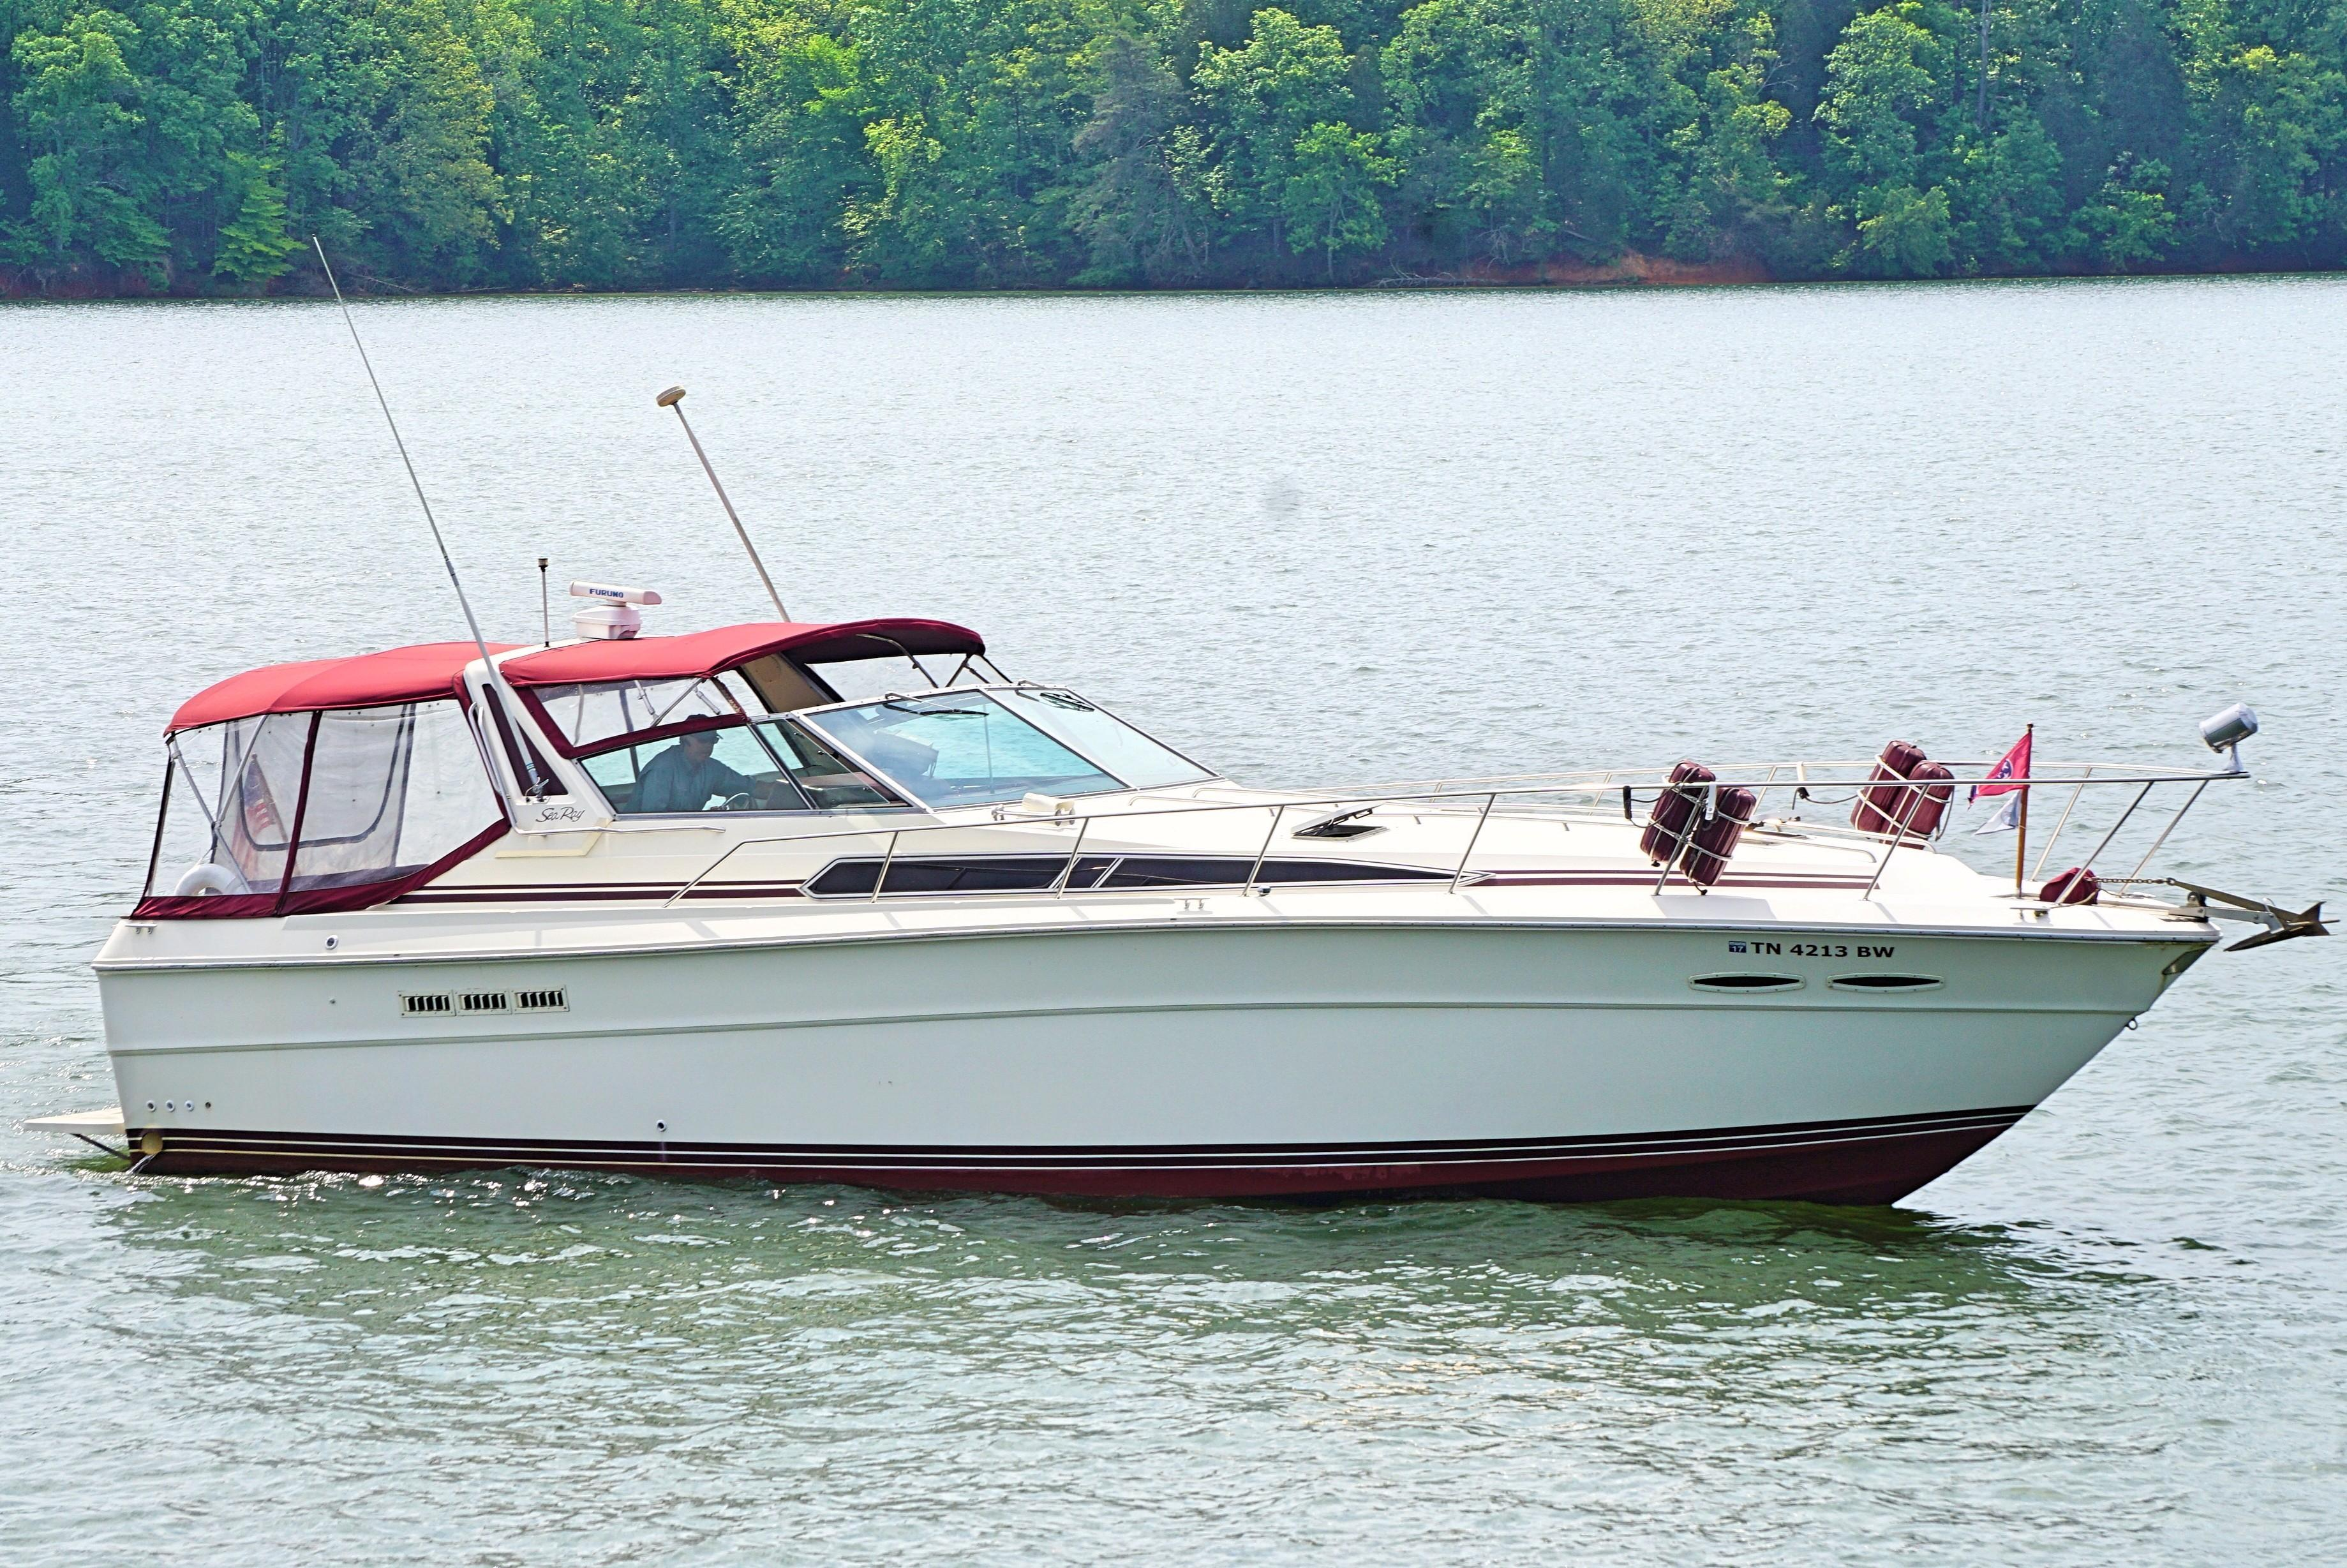 1985 Sea Ray 390 Express Cruiser Knoxville, Tennessee - Pier 33